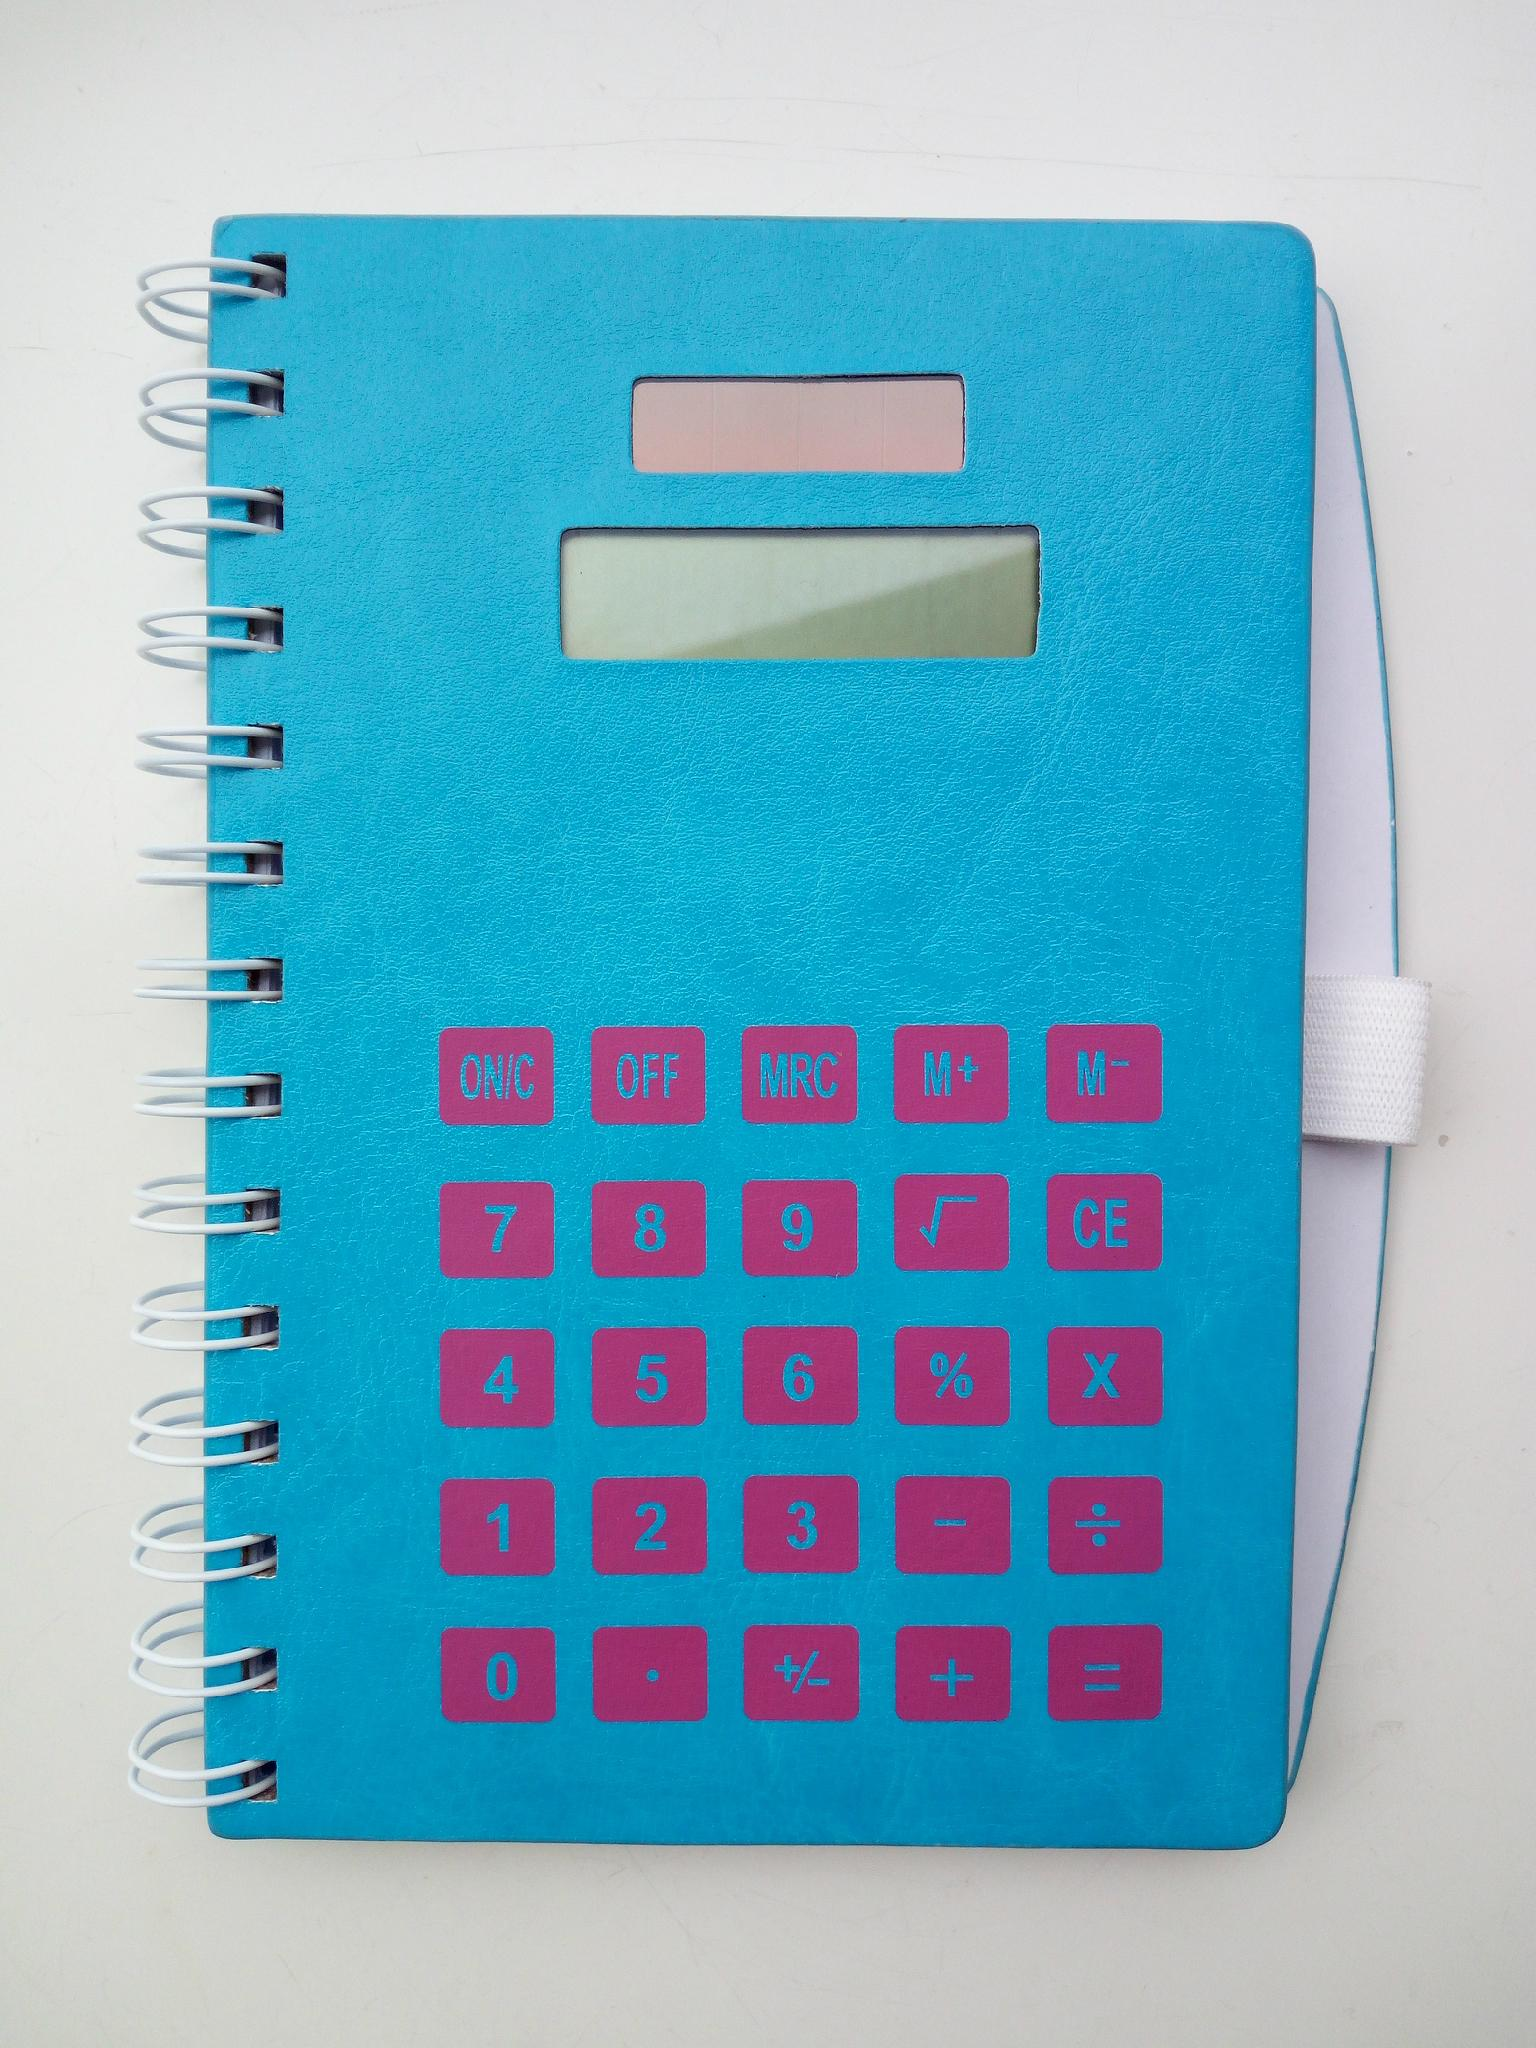 70 pages of notebook with calculator and pen 1